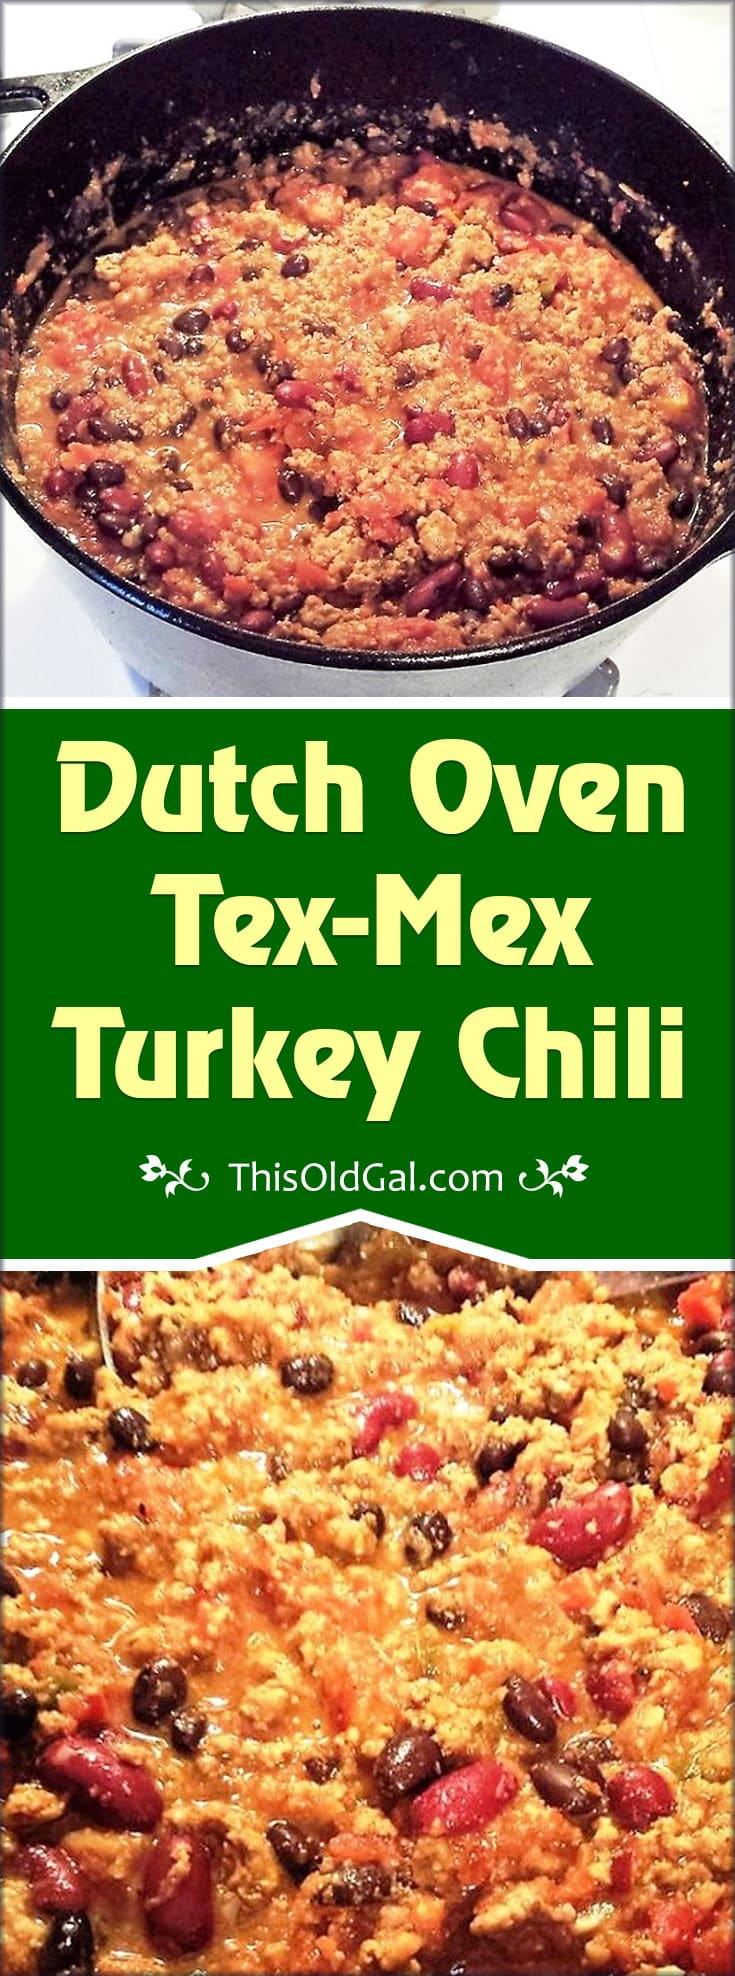 Dutch Oven Tex-Mex Turkey Chili